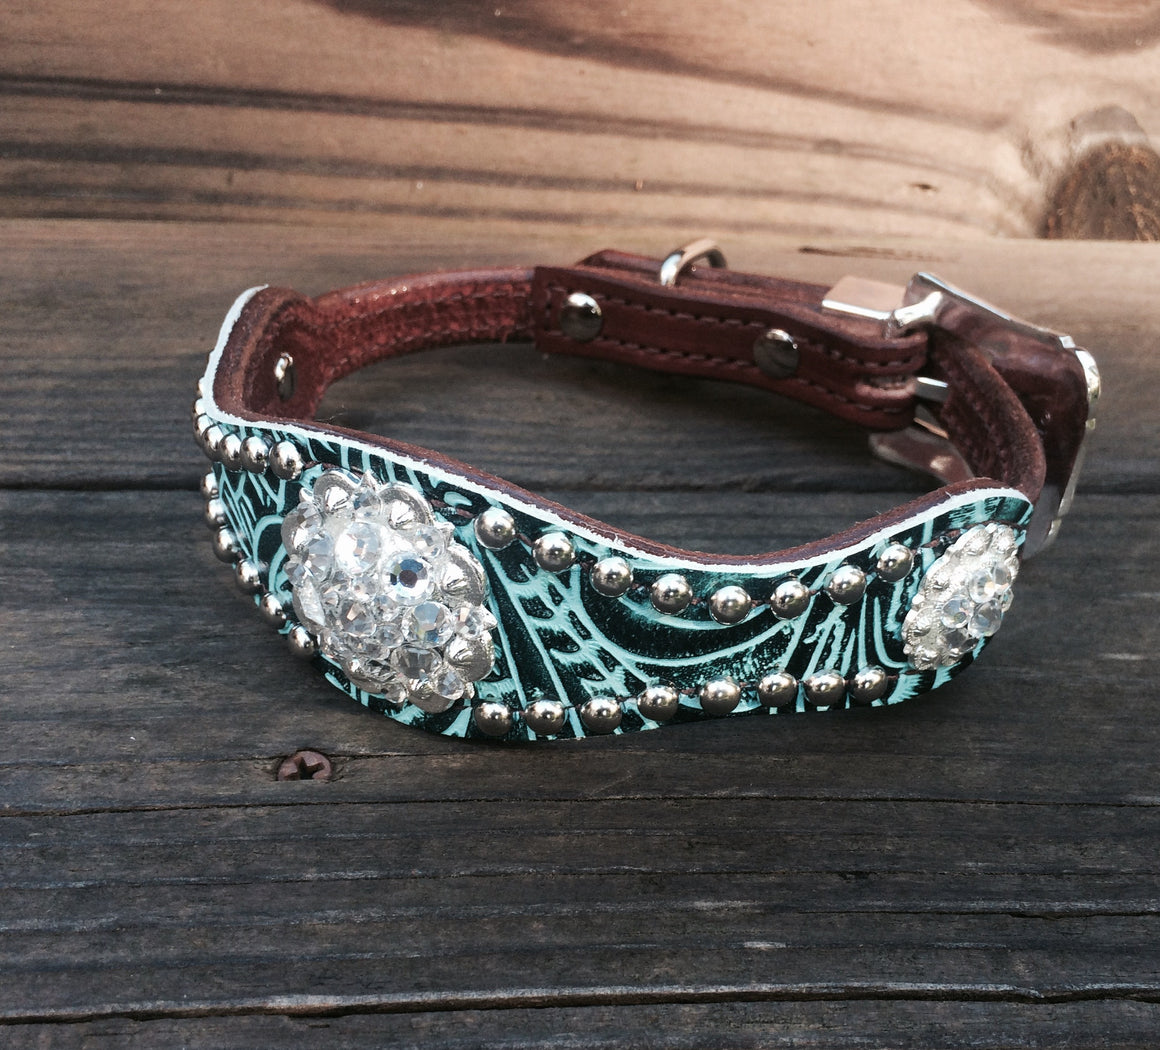 Teal Filagree Scallop Dog Collar w/ Clear Rhinostone Bright Silver Conchos & Buckle